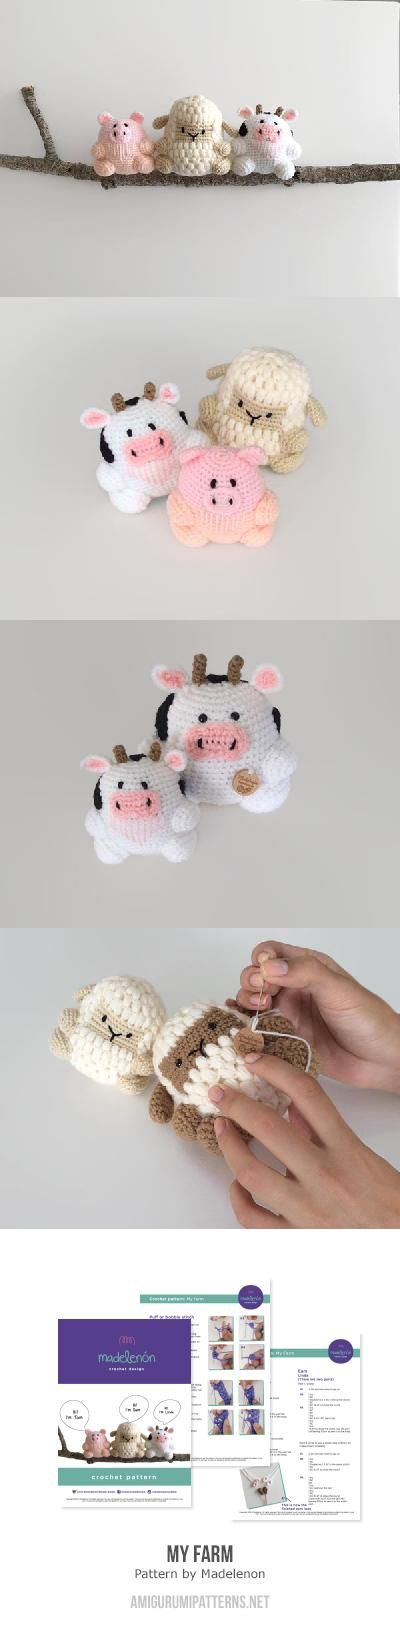 My Farm Amigurumi Pattern